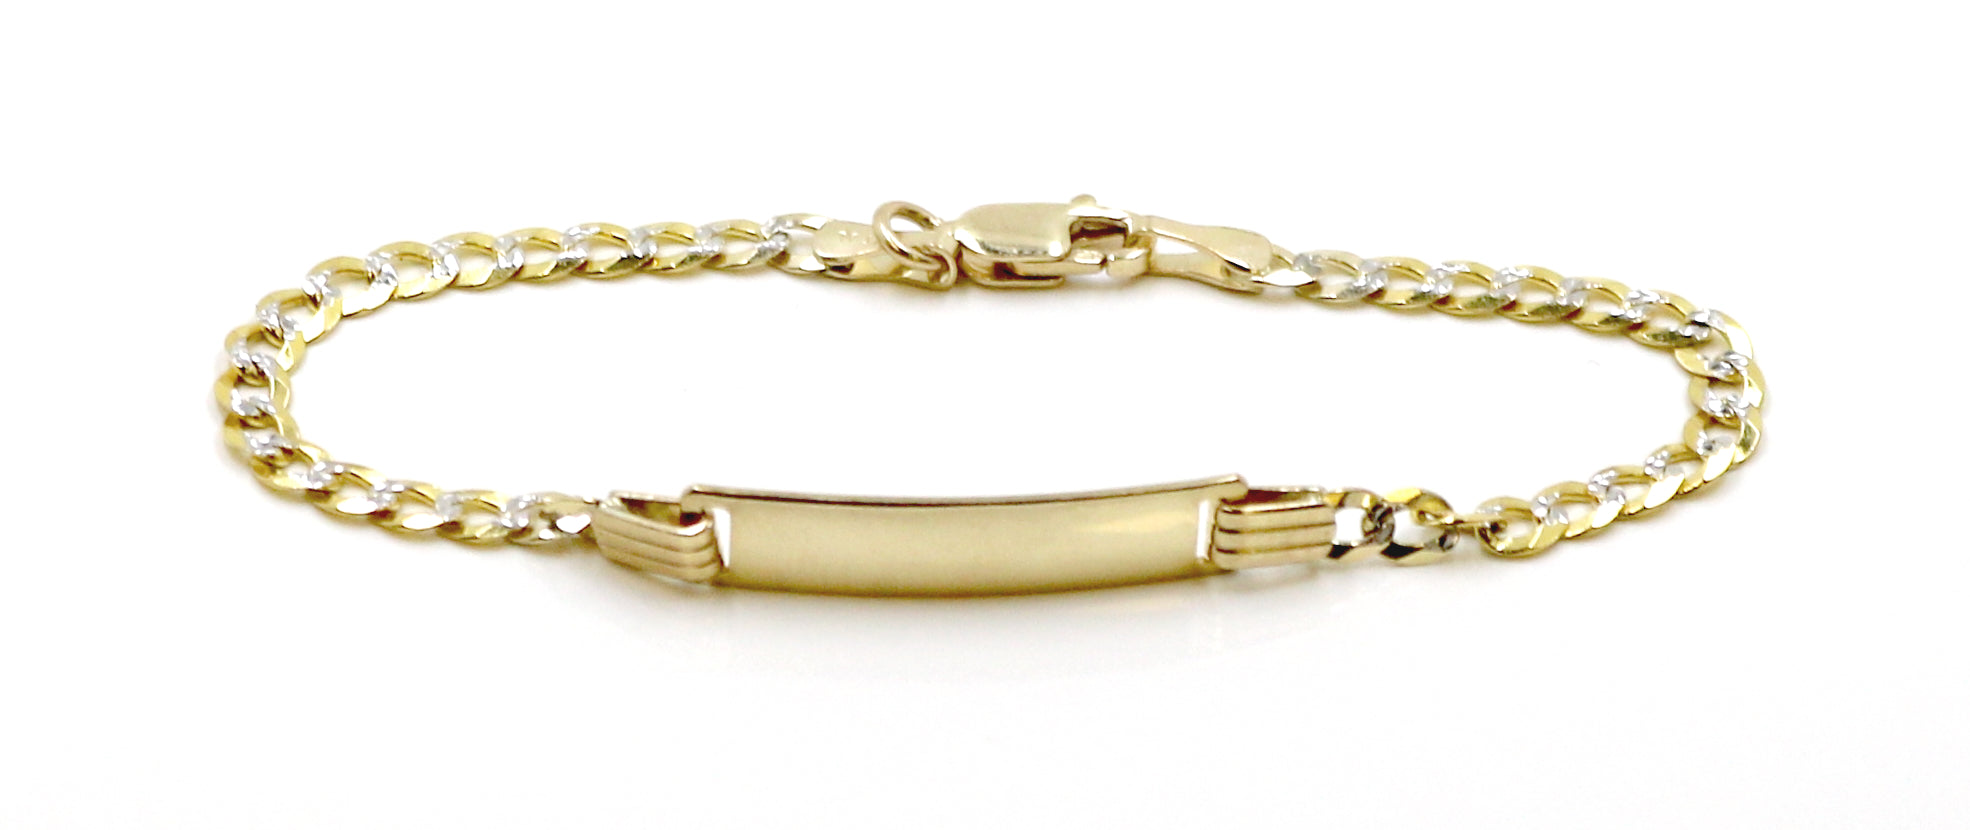 Real 10K Two Tone (Yellow and White) Gold Cuban Hollow ID Bracelet For Kids 3.5mm